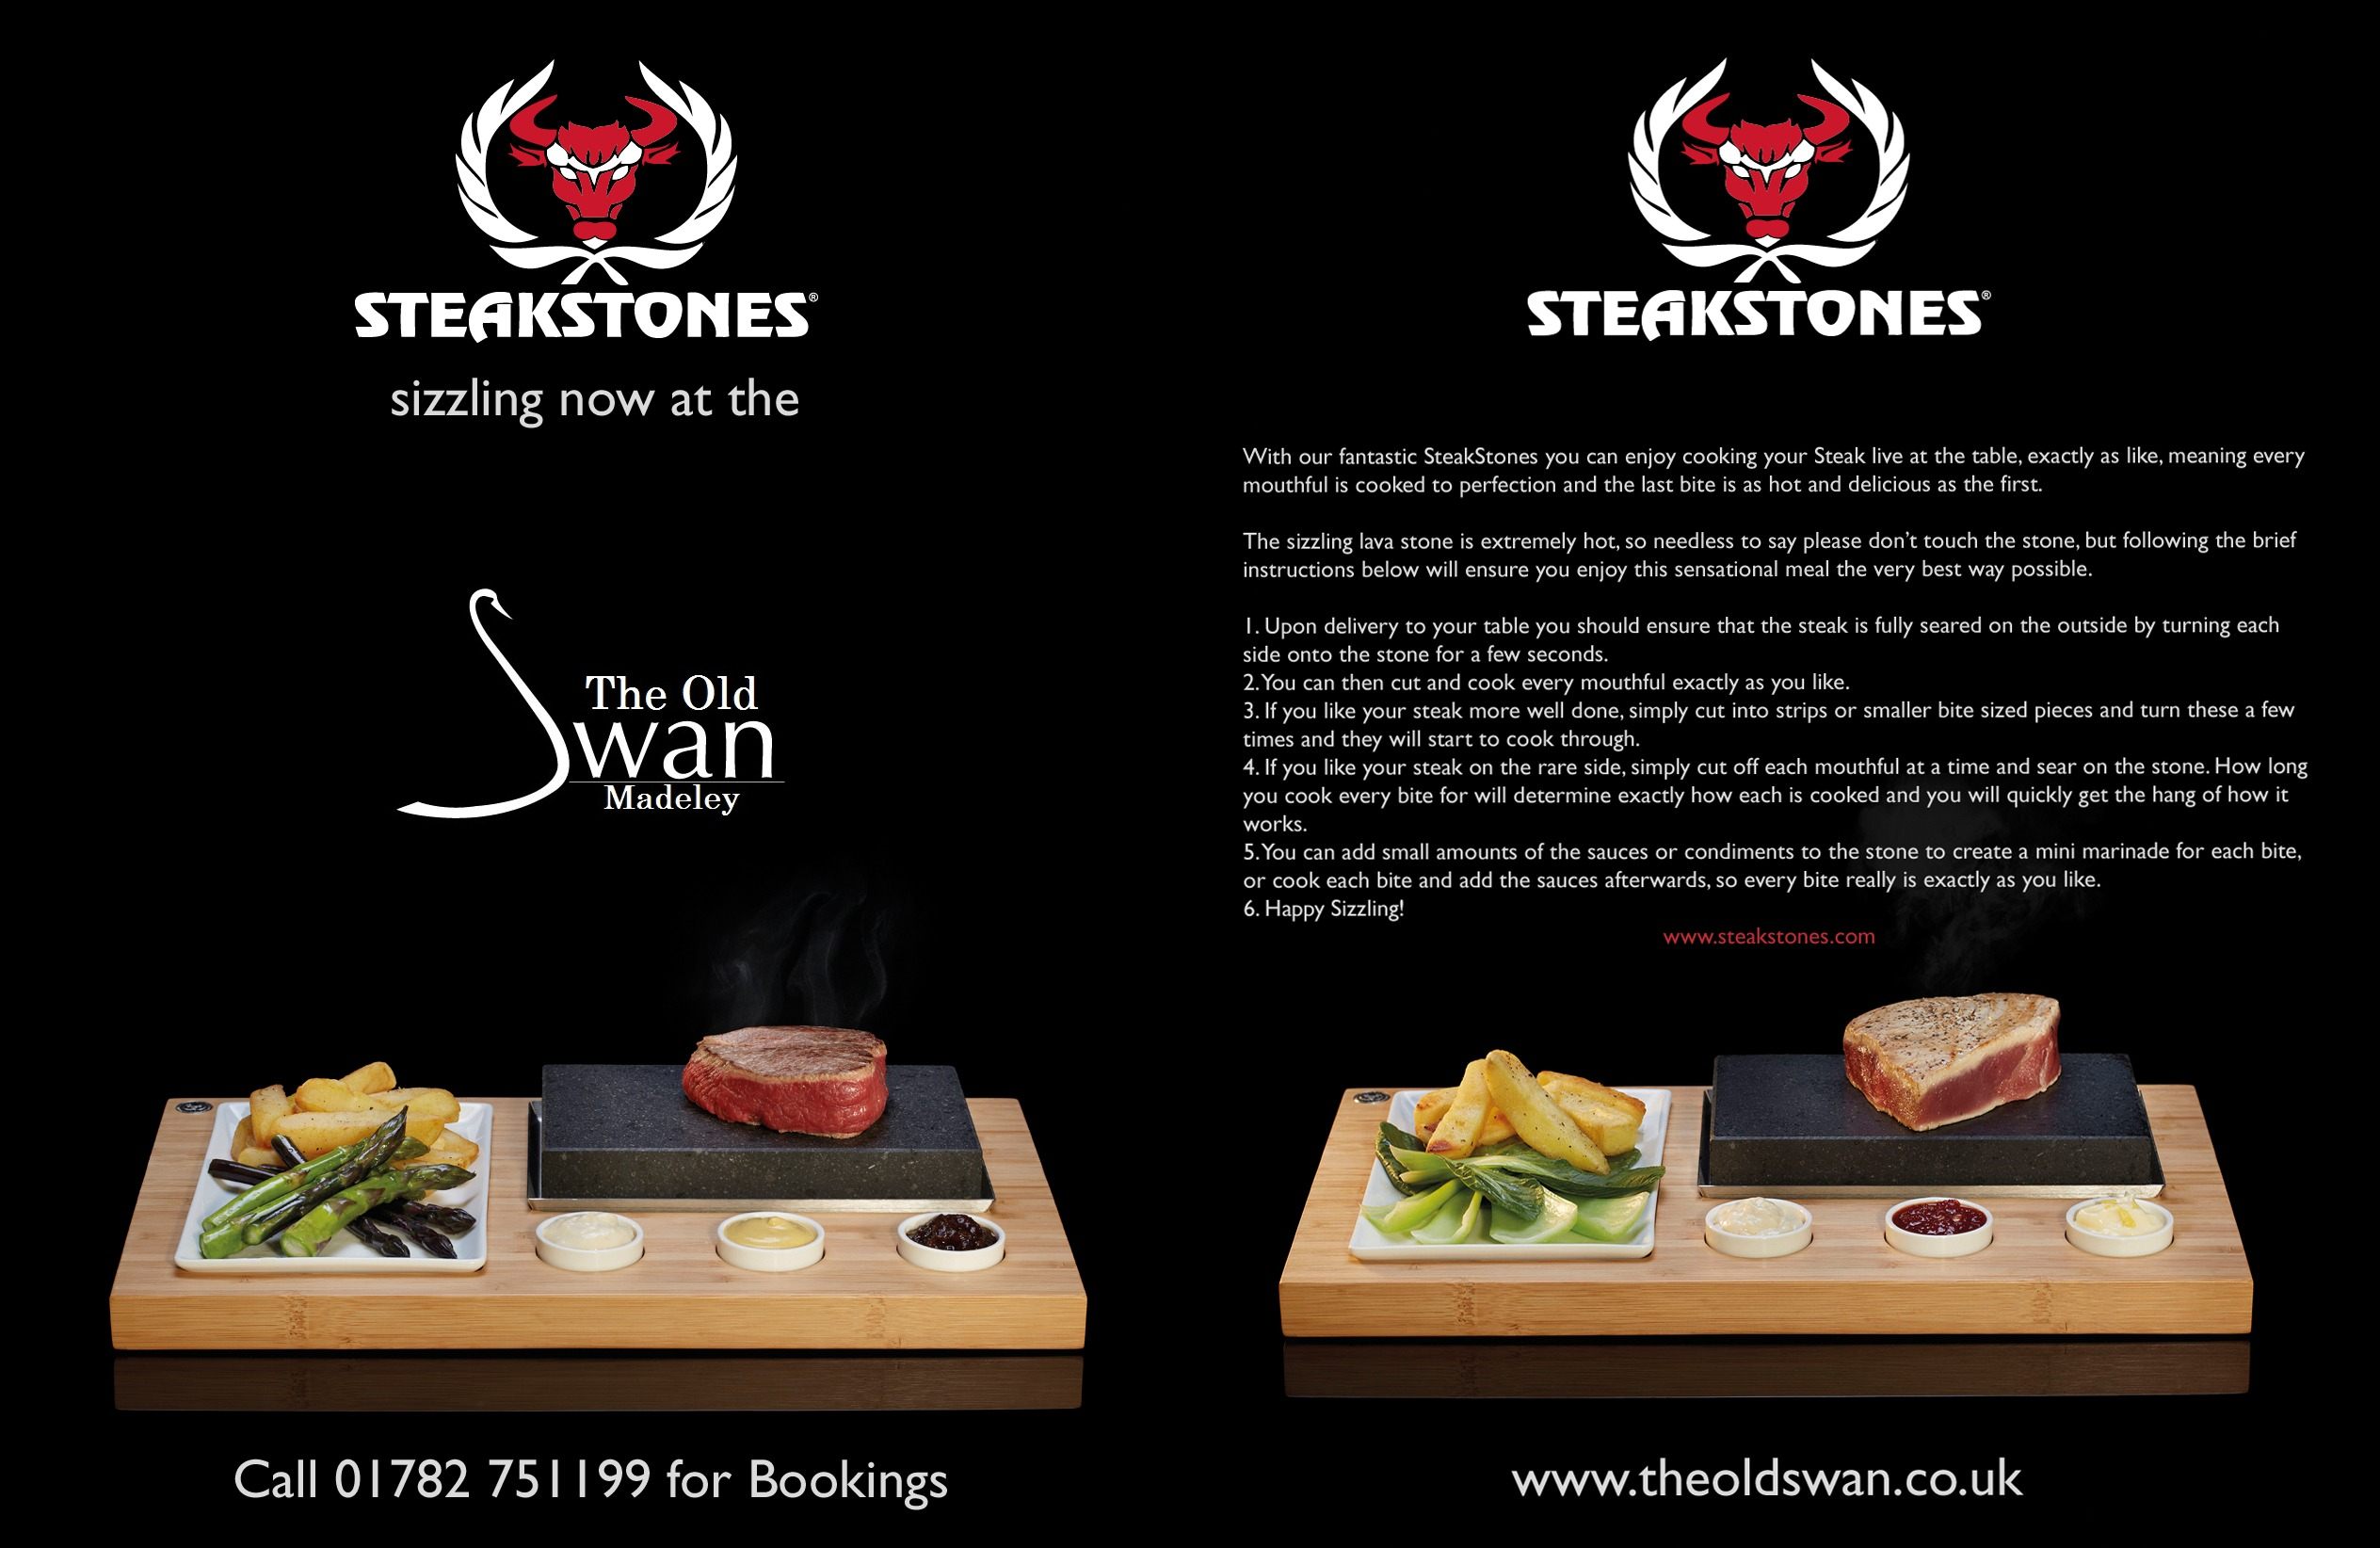 SteakStones Customised Instruction Cards